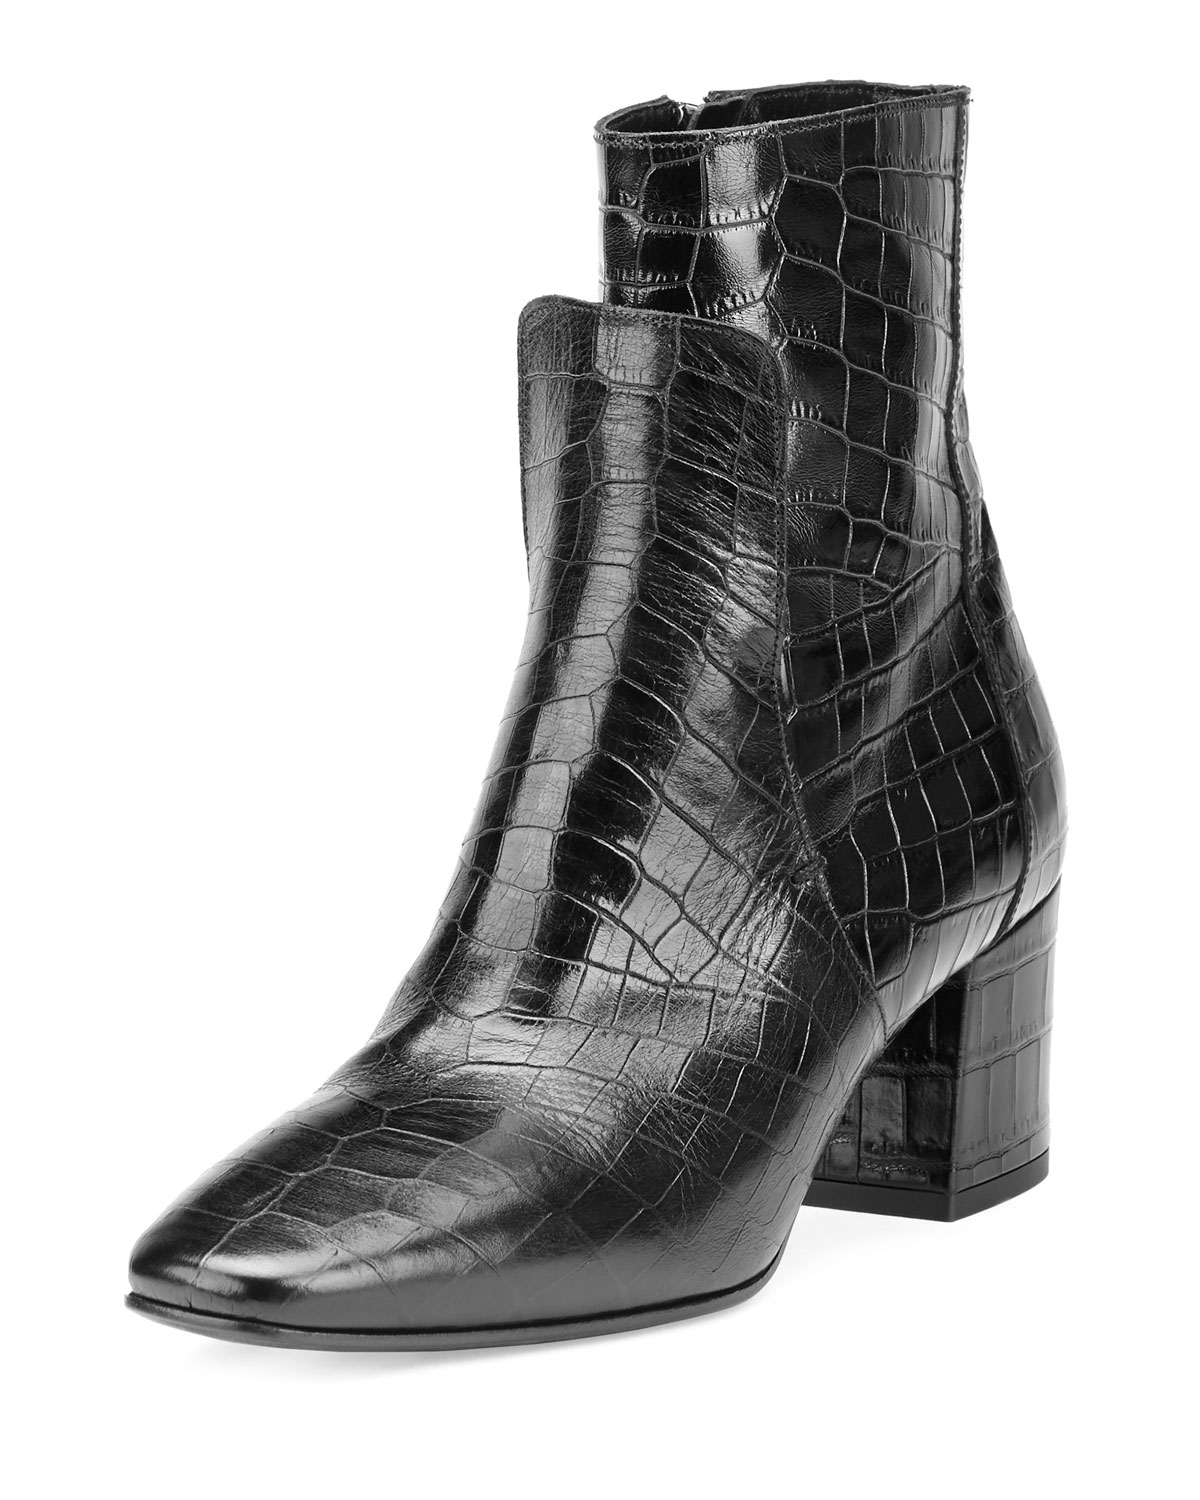 Givenchy Paris Croc-Embossed Leather